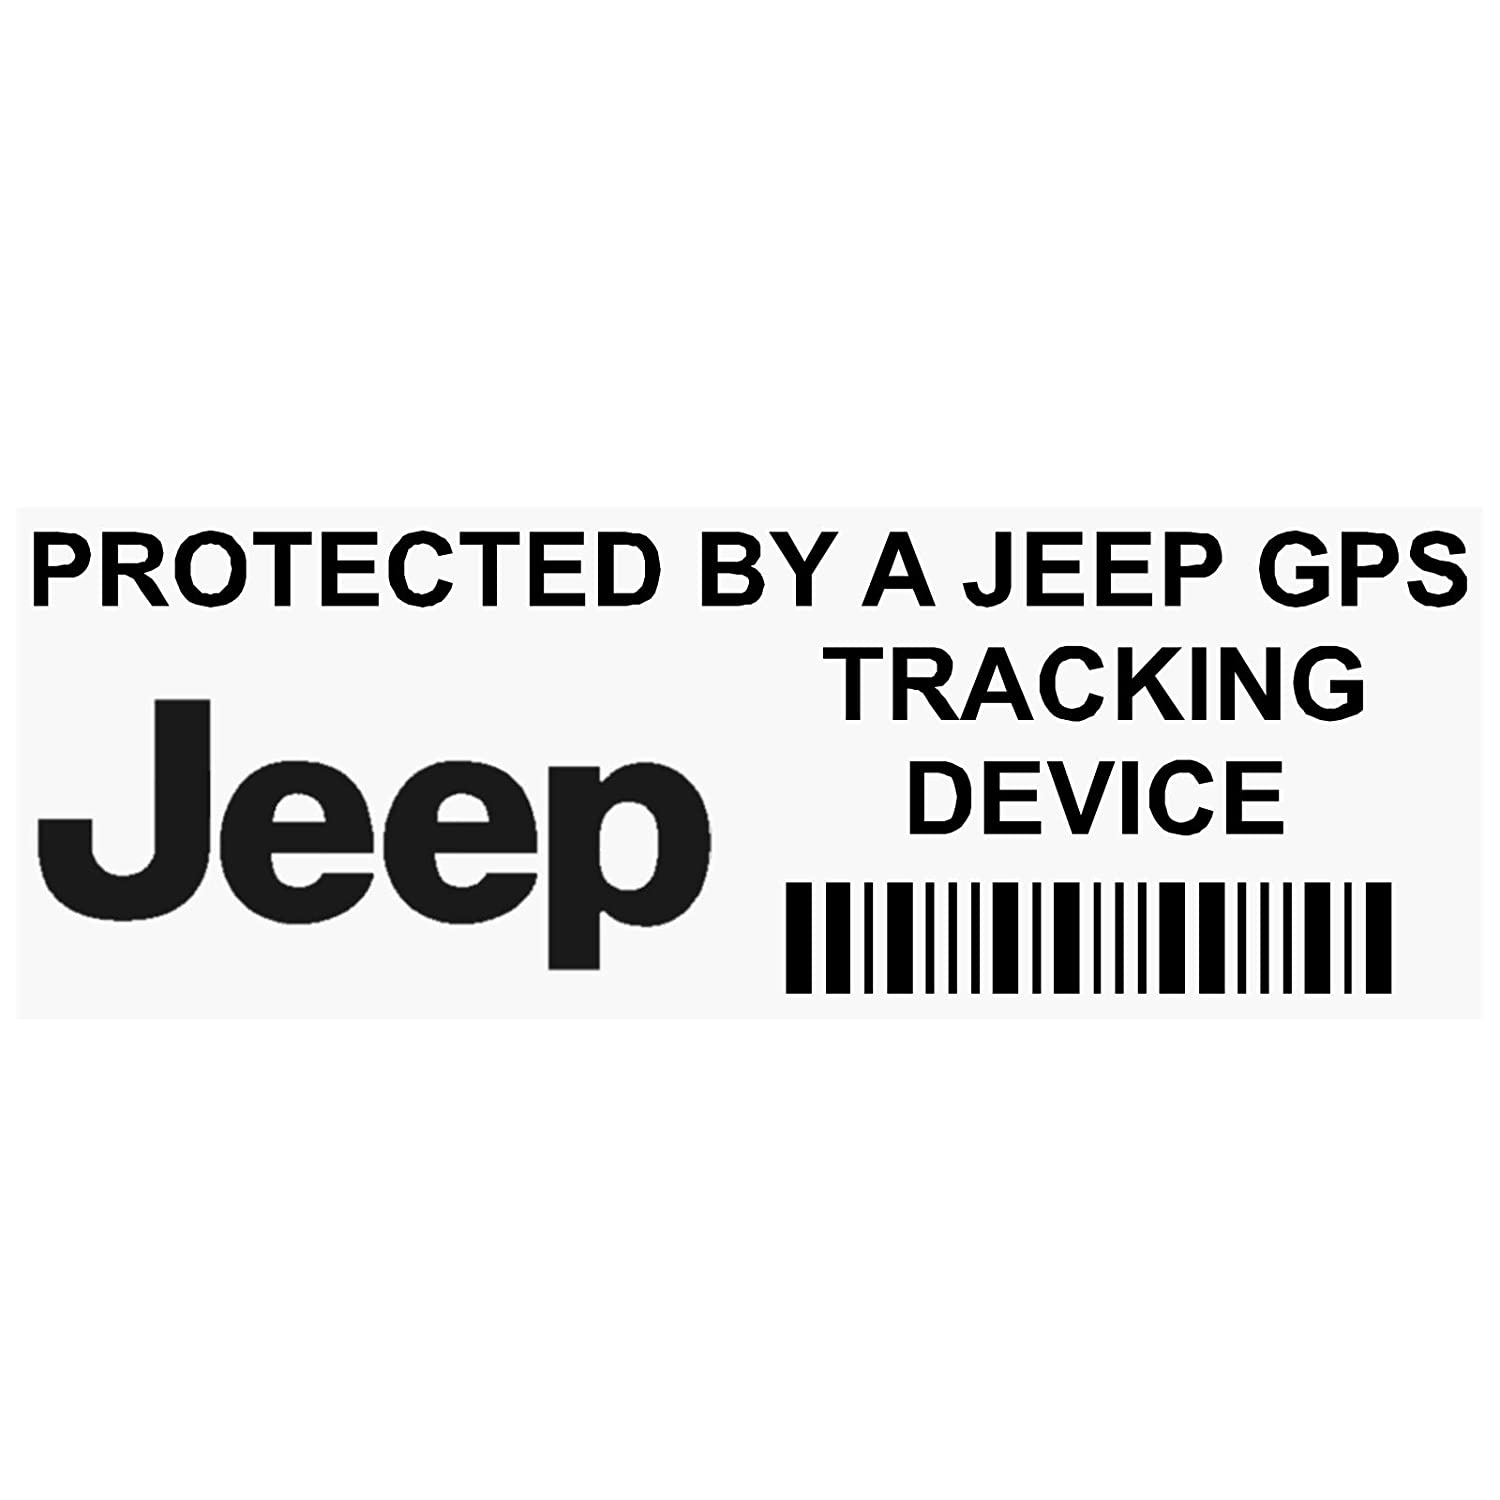 Platinum Place Lot de 5/ autocollants PPJEEPGPSBLK avec inscription de suivi GPS /«/ Tracking Device/ /» 87/ x 30/ mm pour Jeep